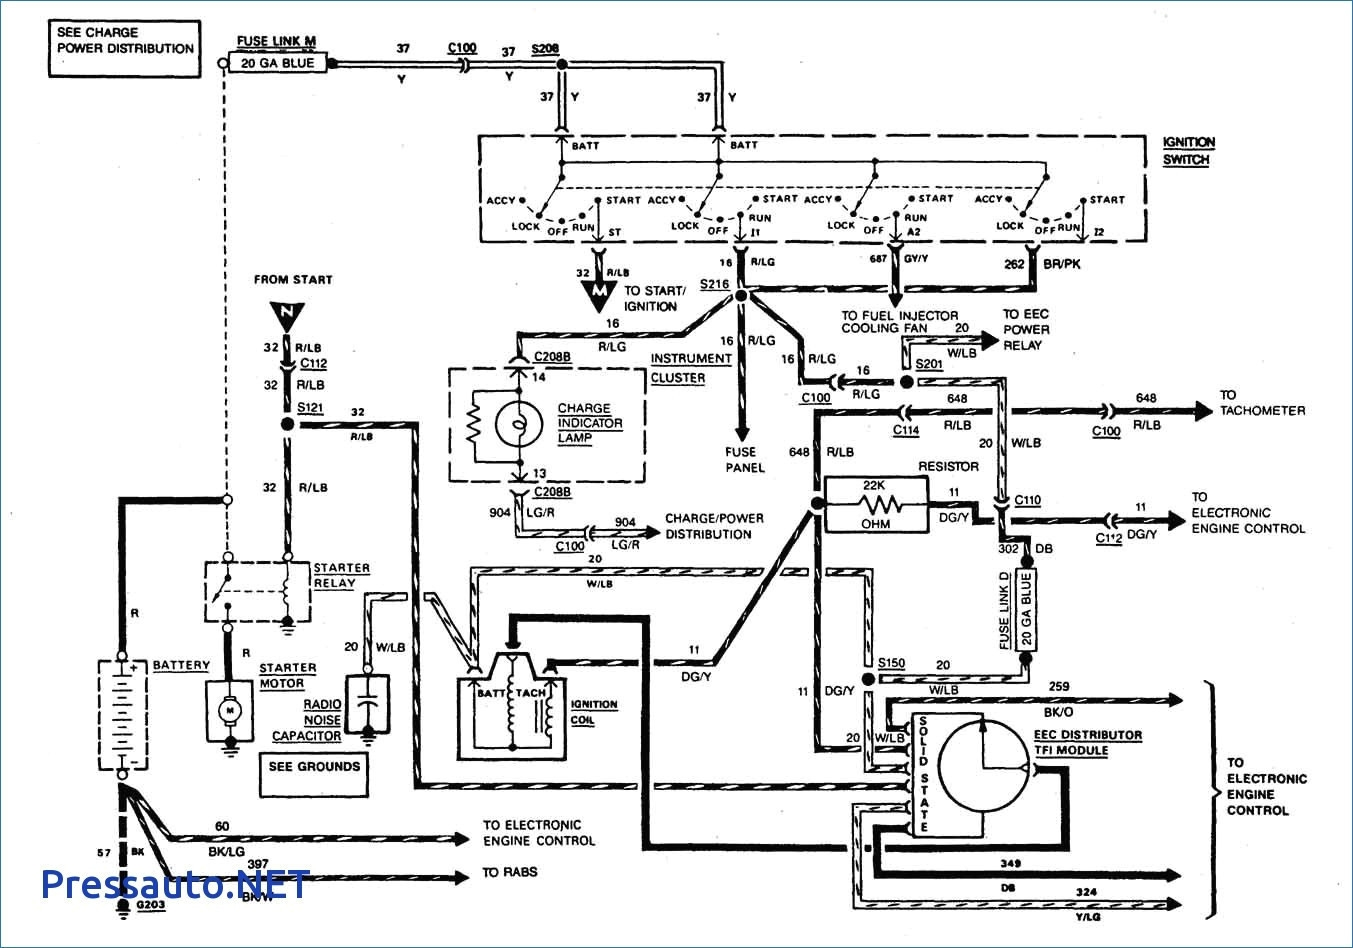 1989 ford f150 ignition wiring diagram | free wiring diagram 1992 ford e150 wiring diagram